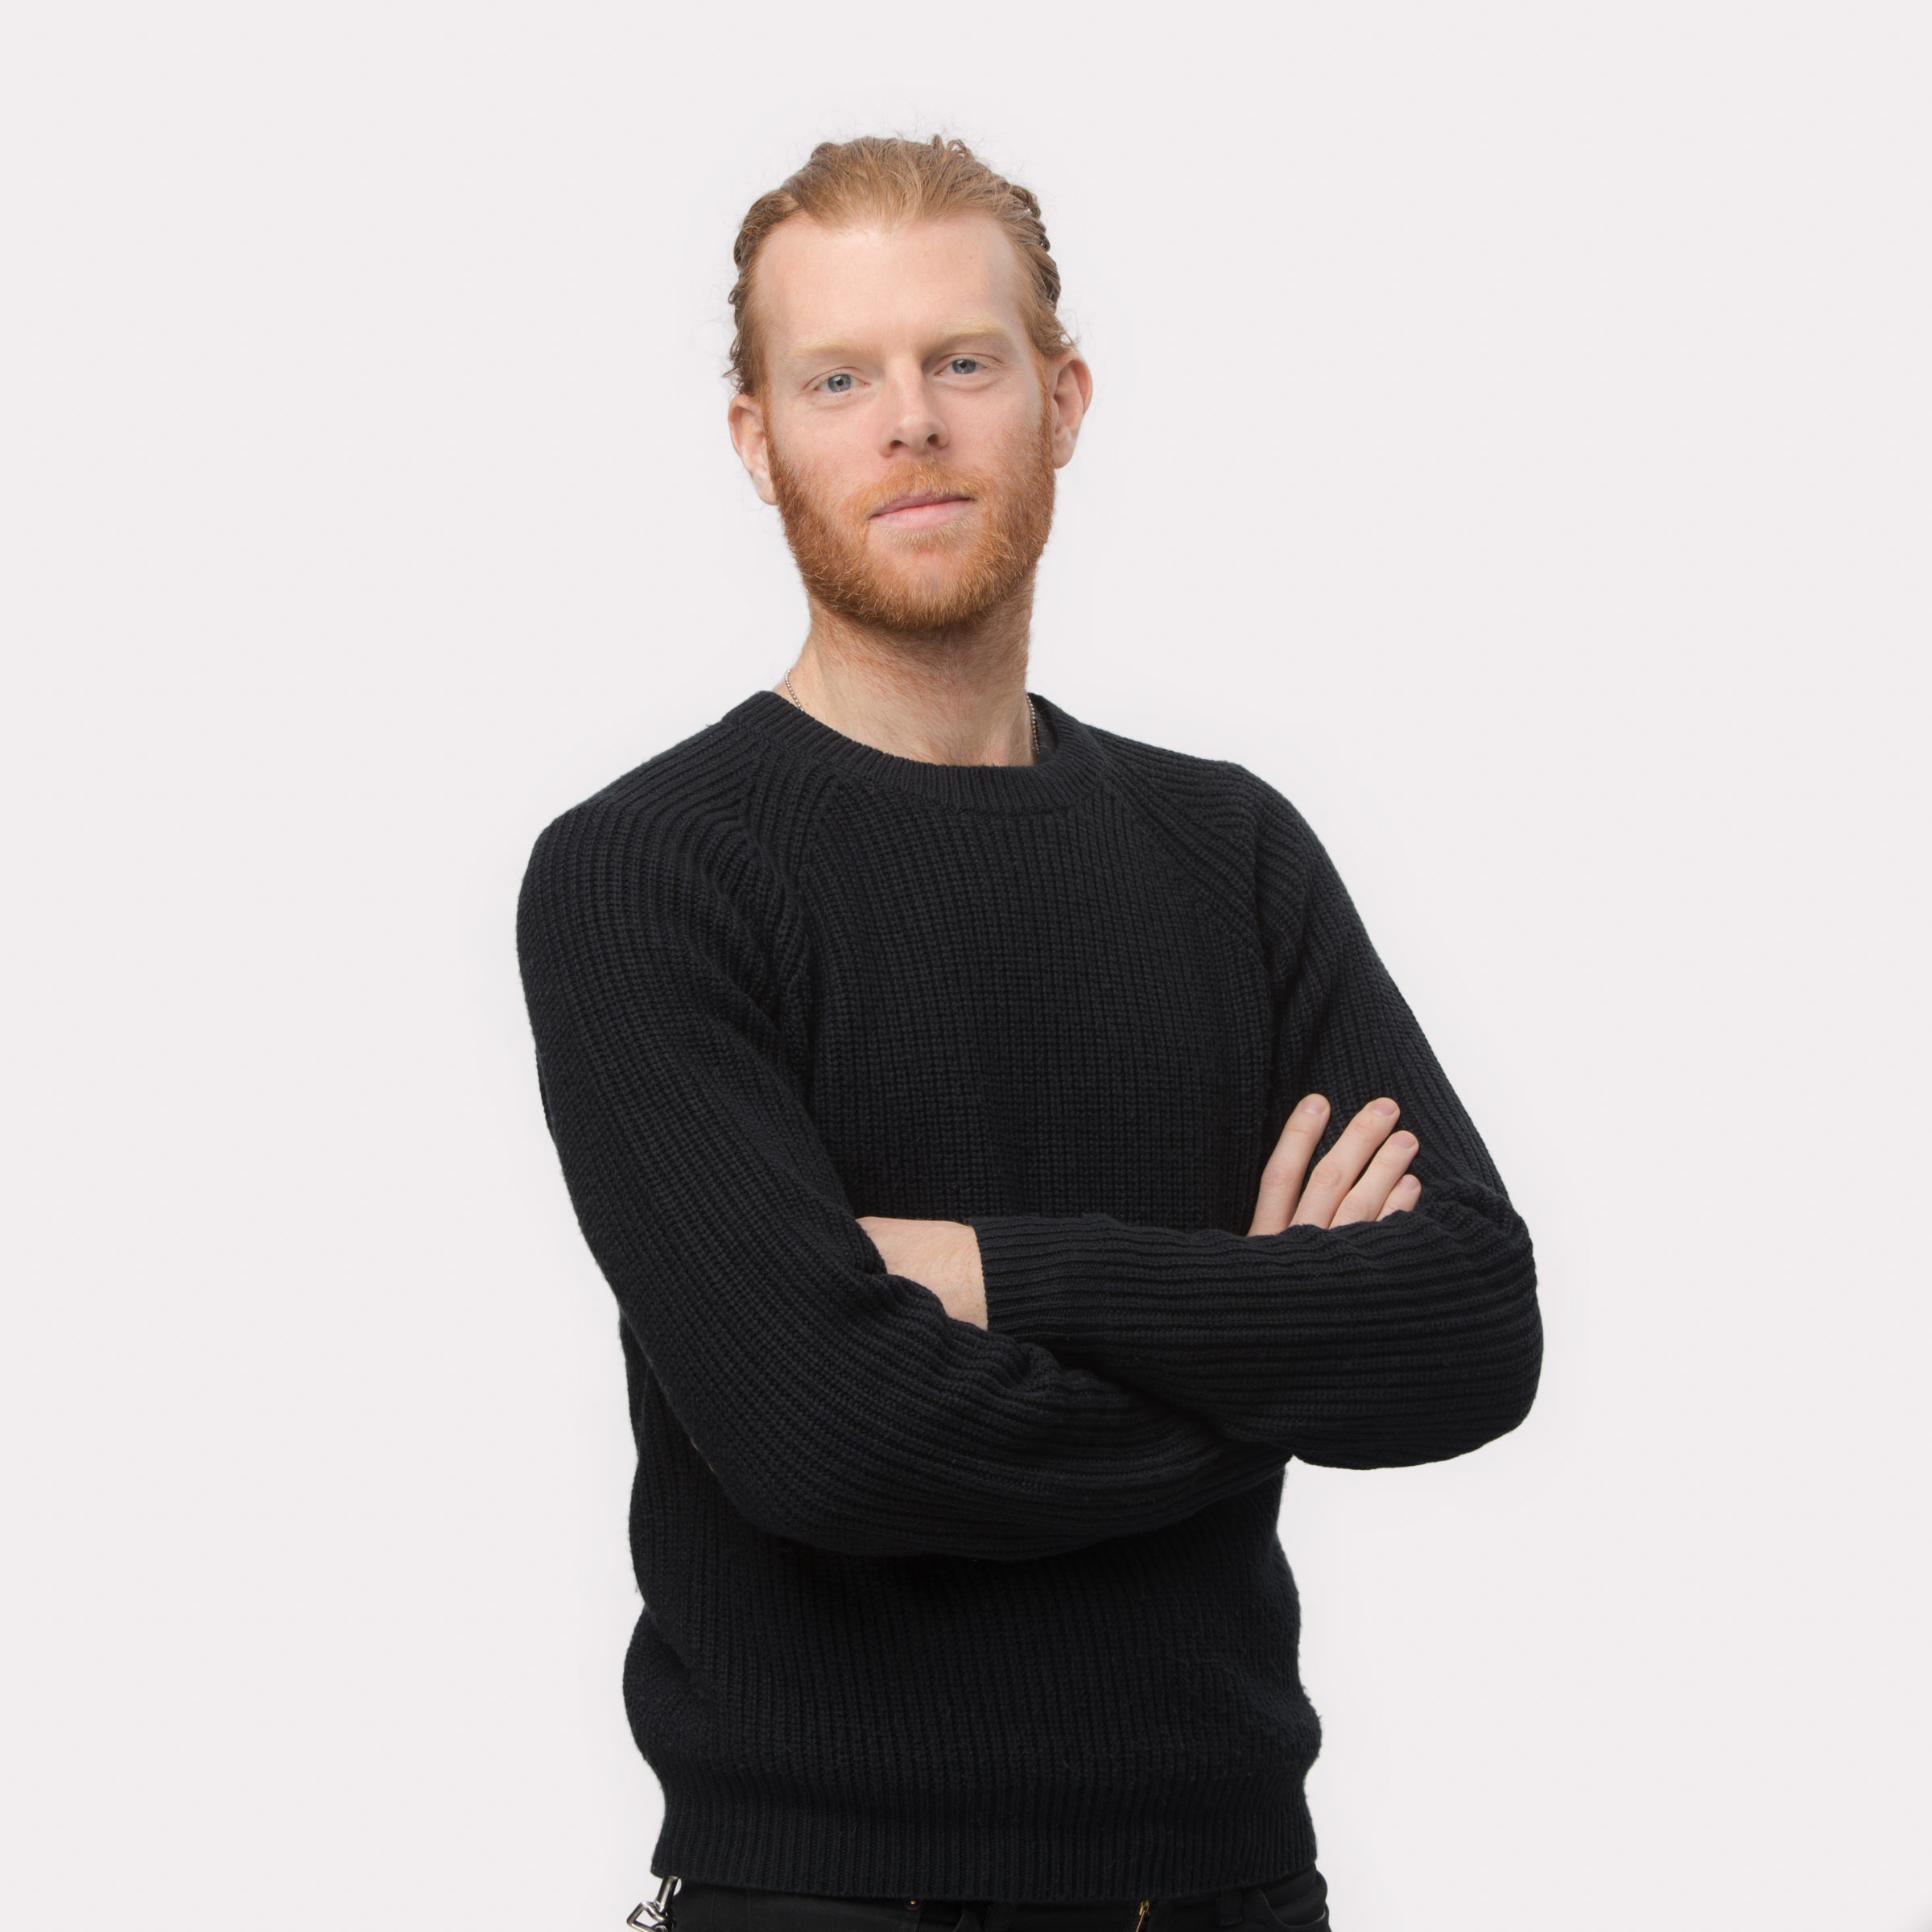 Nathan Adkisson - Director of Strategy, Local ProjectsView Full Bio